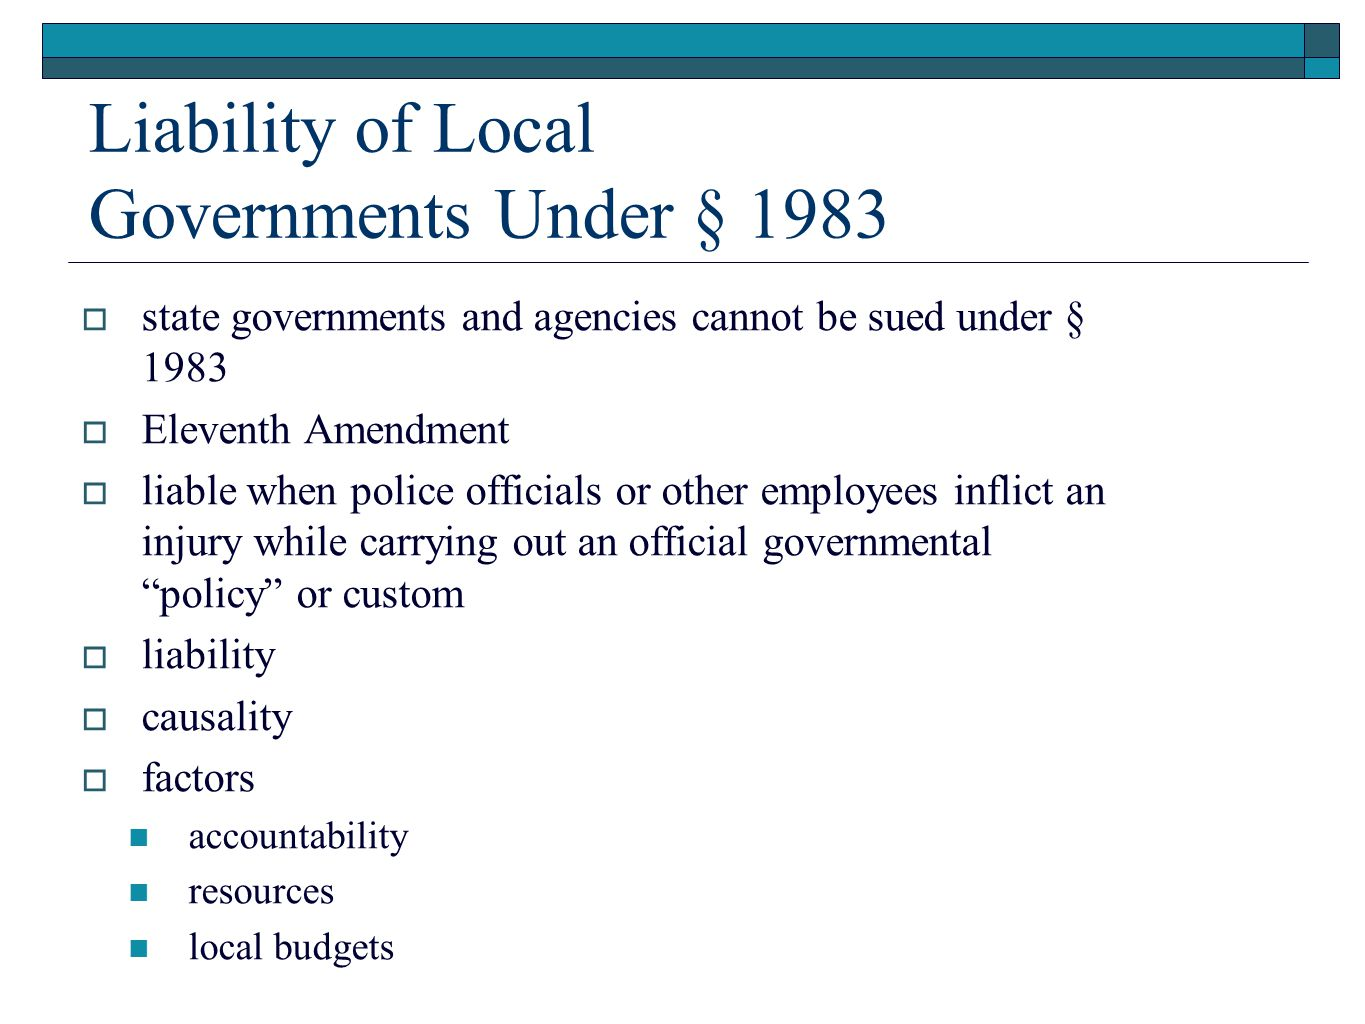 Liability of Local Governments Under § 1983